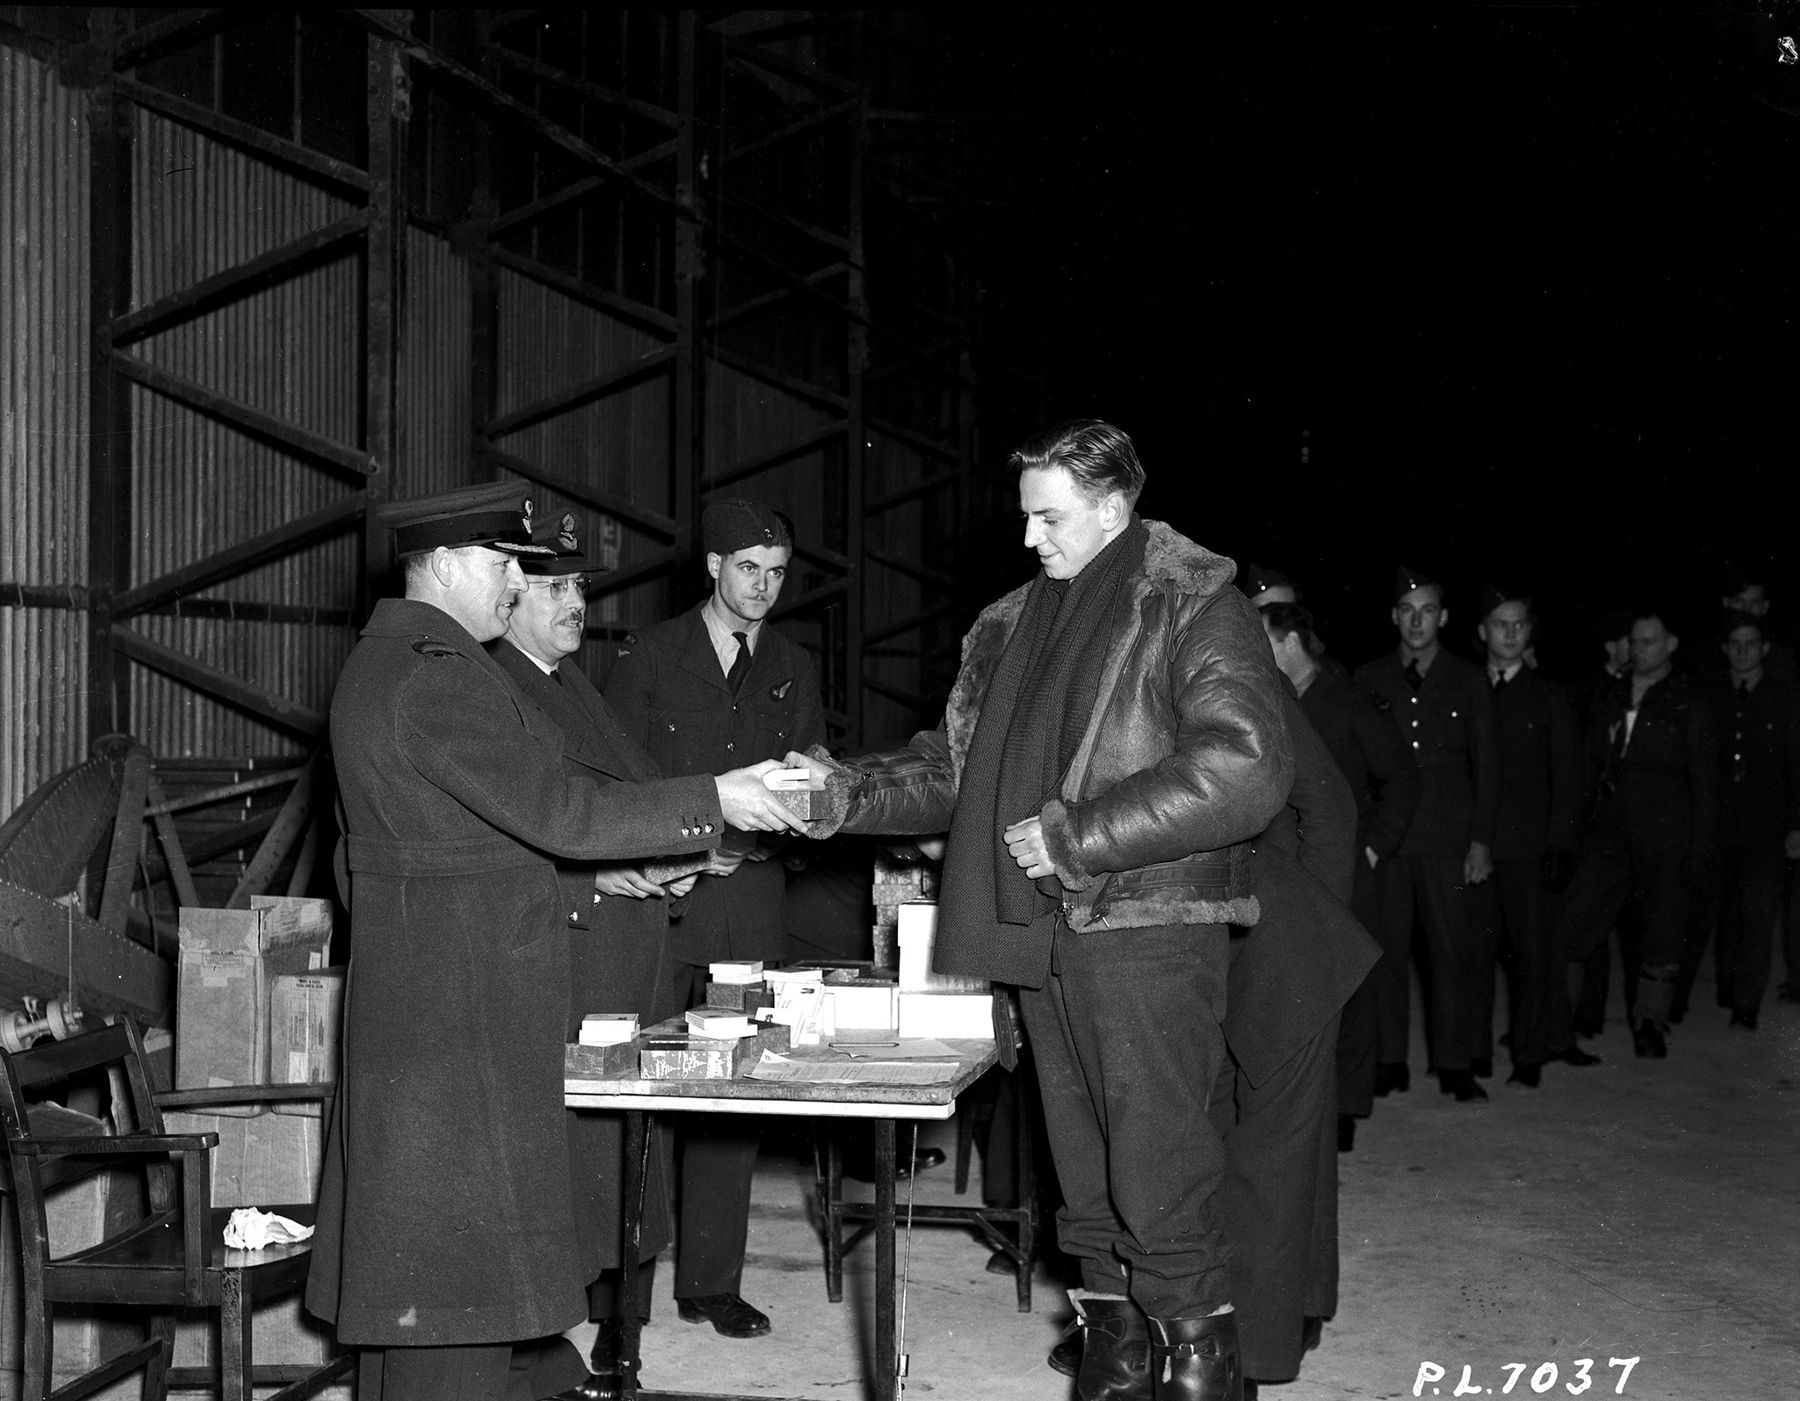 Sergeant Air Gunner A.J. Francis of Saskatoon, Saskatchewan, receives a Christmas gift on December 25, 1941, from Group Captain W.A.D. Brock, who is the commanding officer of the RAF station from which a Canadian bomber squadron operates. PHOTO: PL-70337